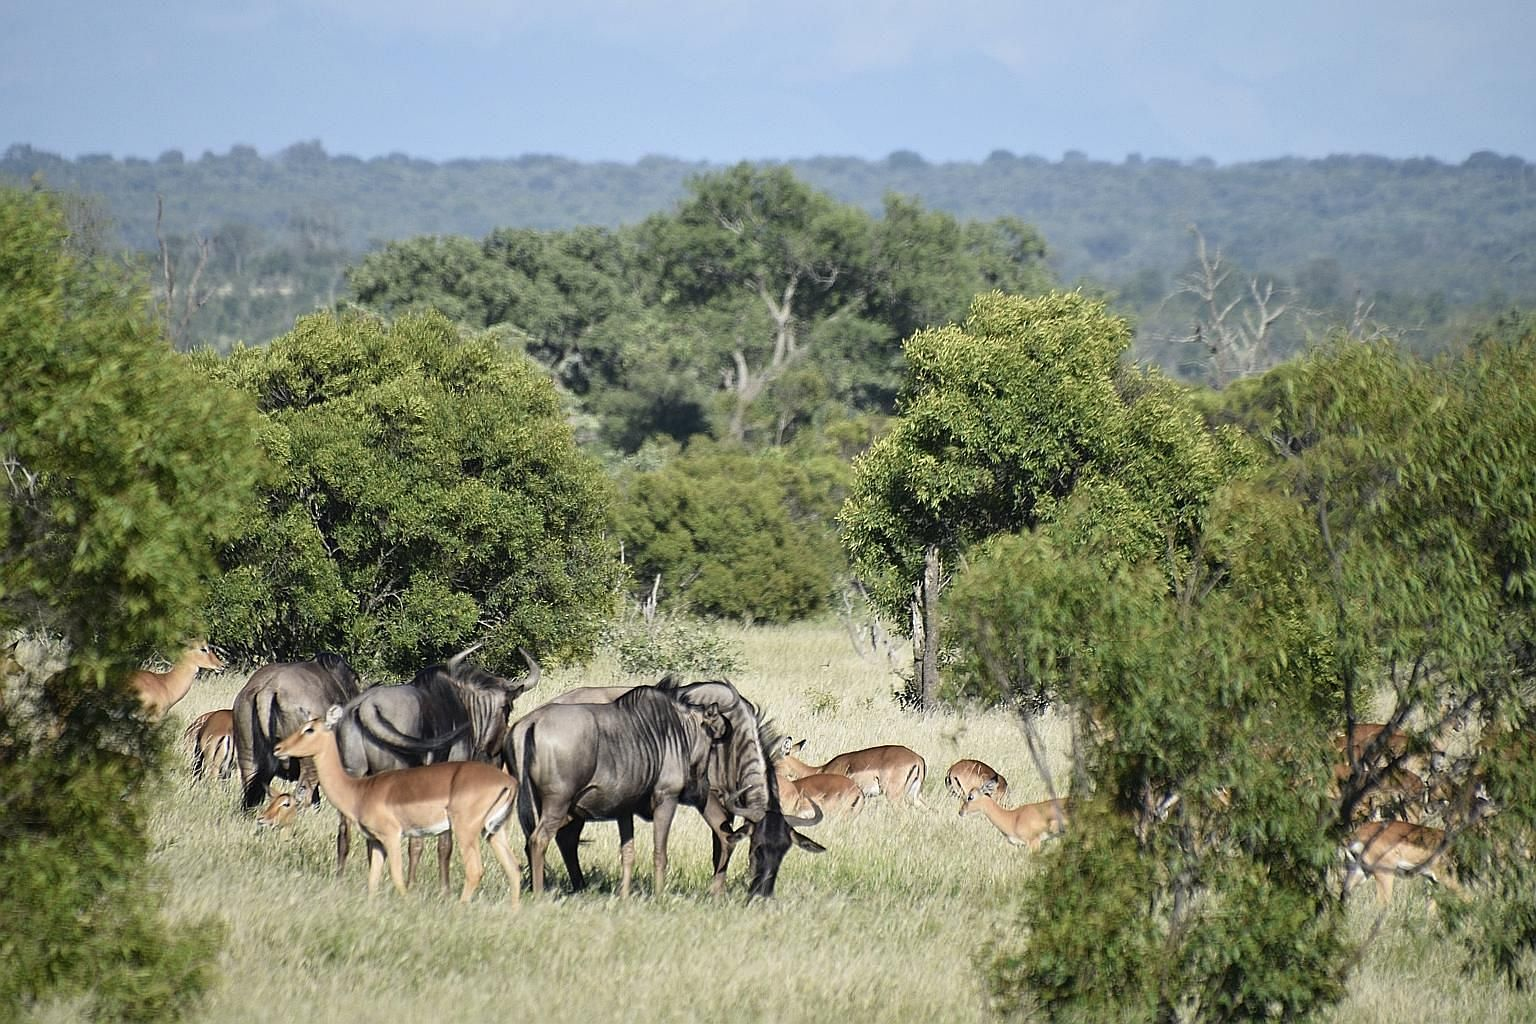 Herds of impala and wildebeest often graze together for safety.